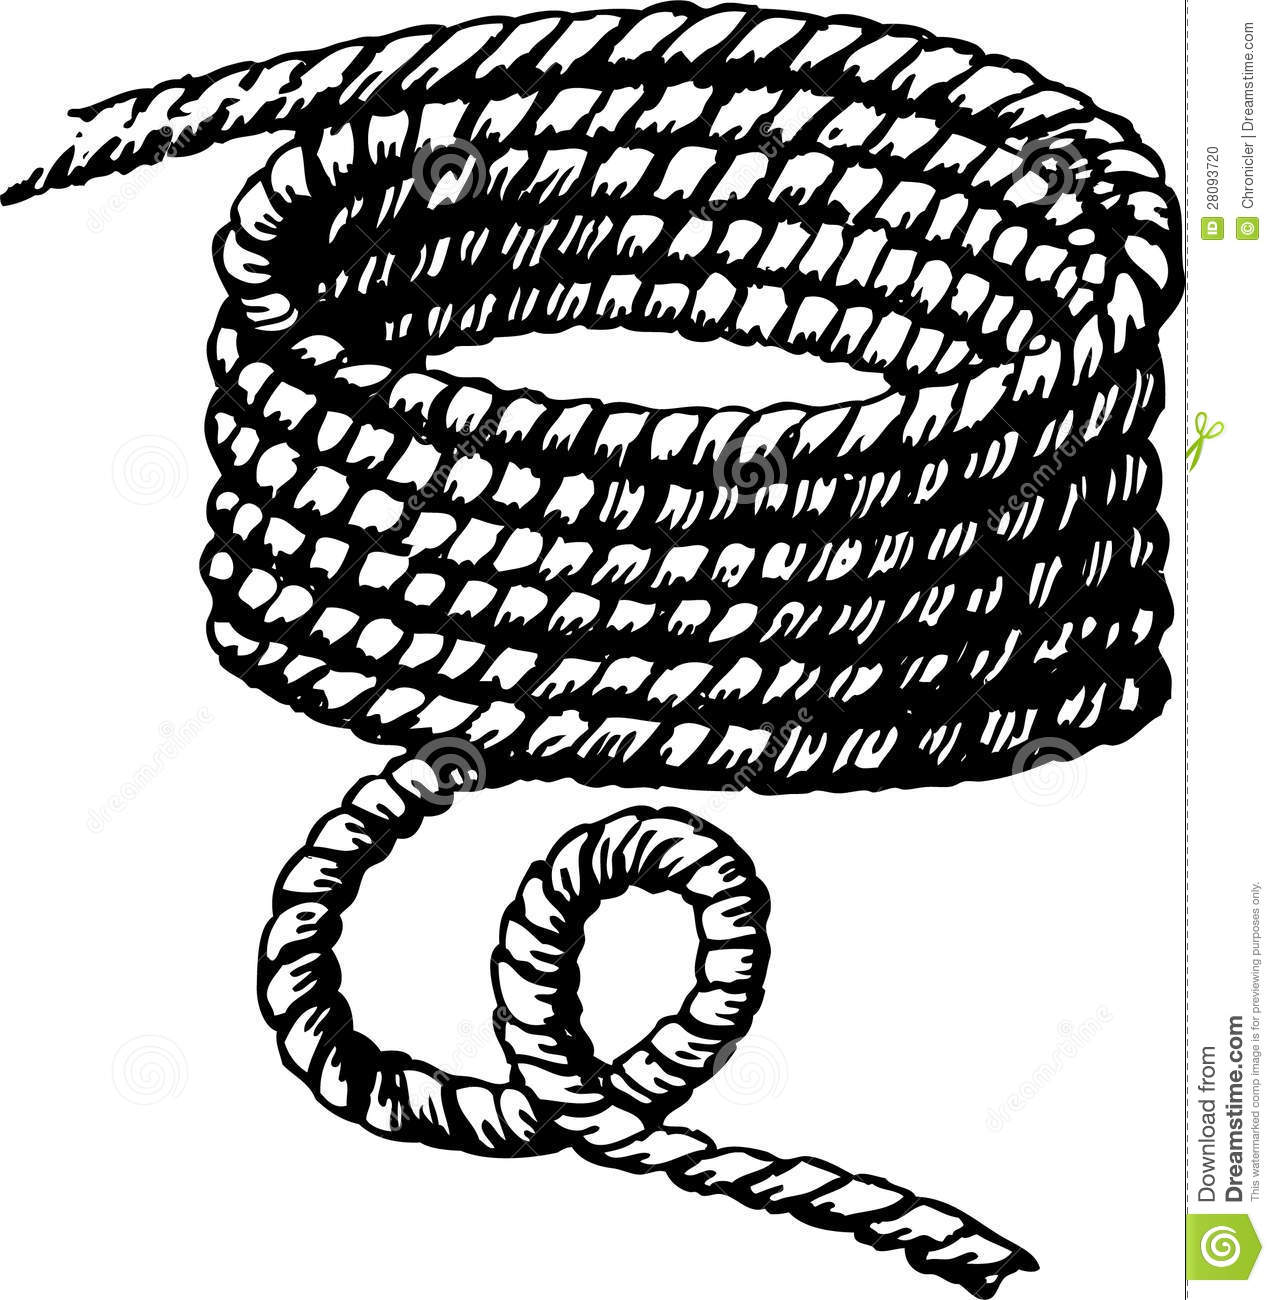 Drawn rope The twisted woodburning the Vector